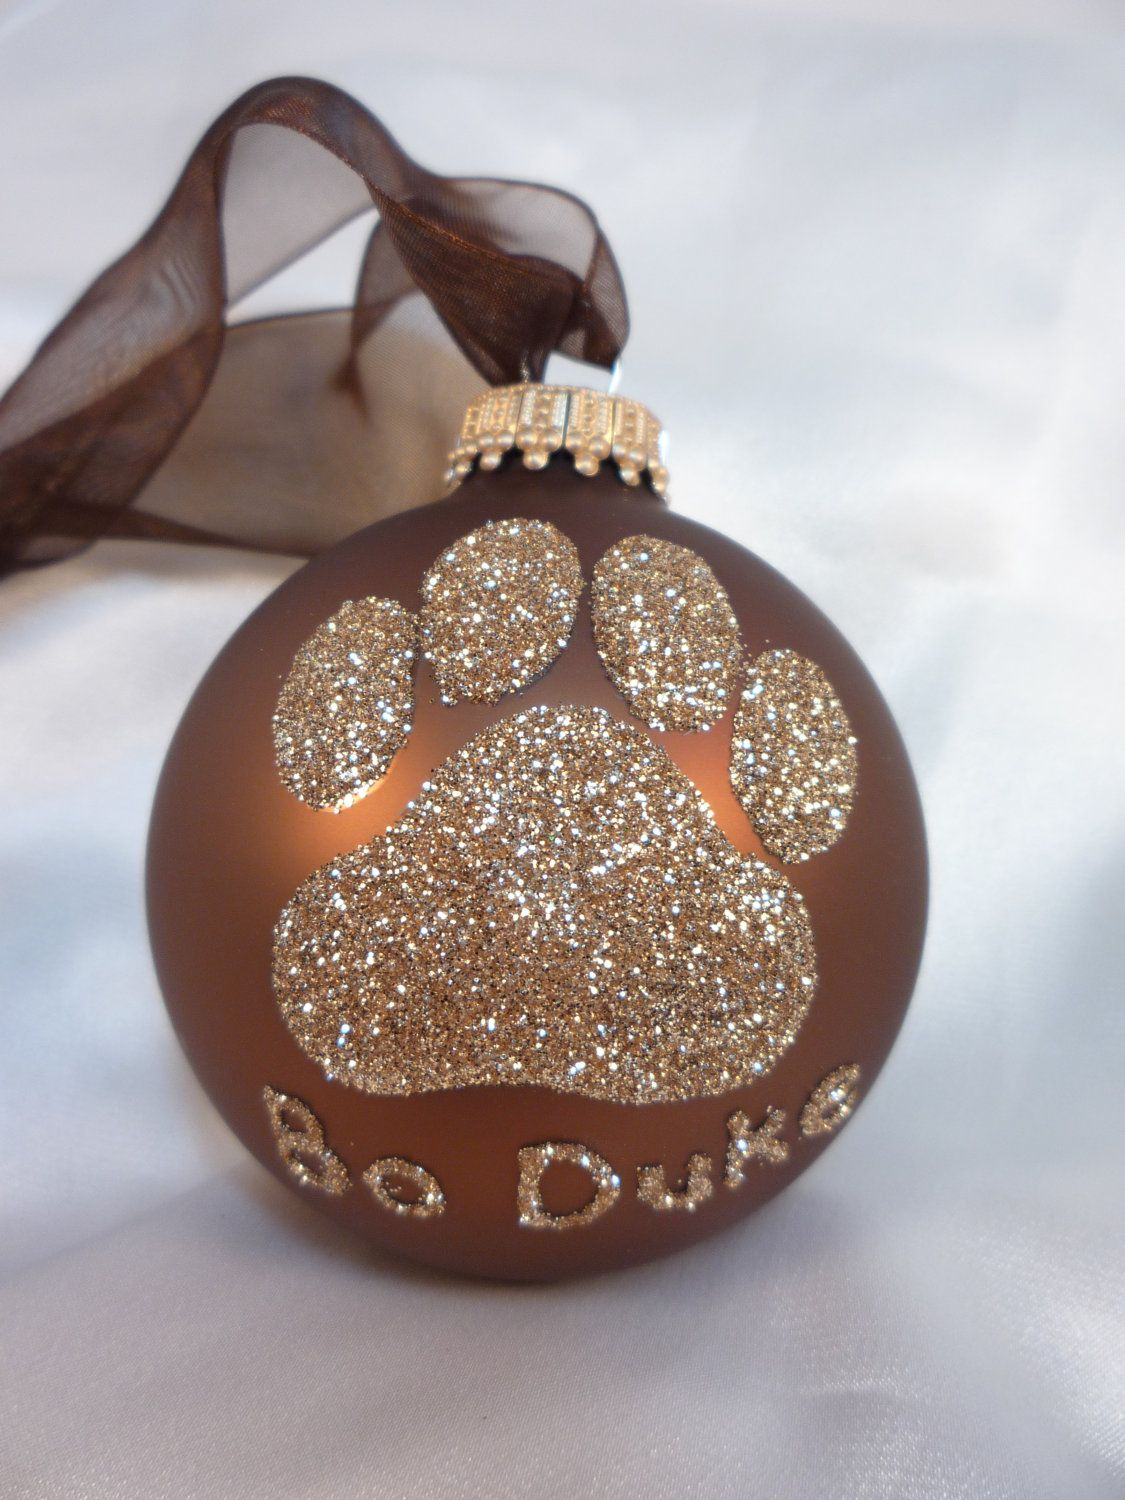 Dog Paw Print Glitter Ornament Personalized Pet Doggie Glass Ball Ornament Chocolate Brown Ornament 1 Glitter Christmas Christmas Ornaments Christmas Diy